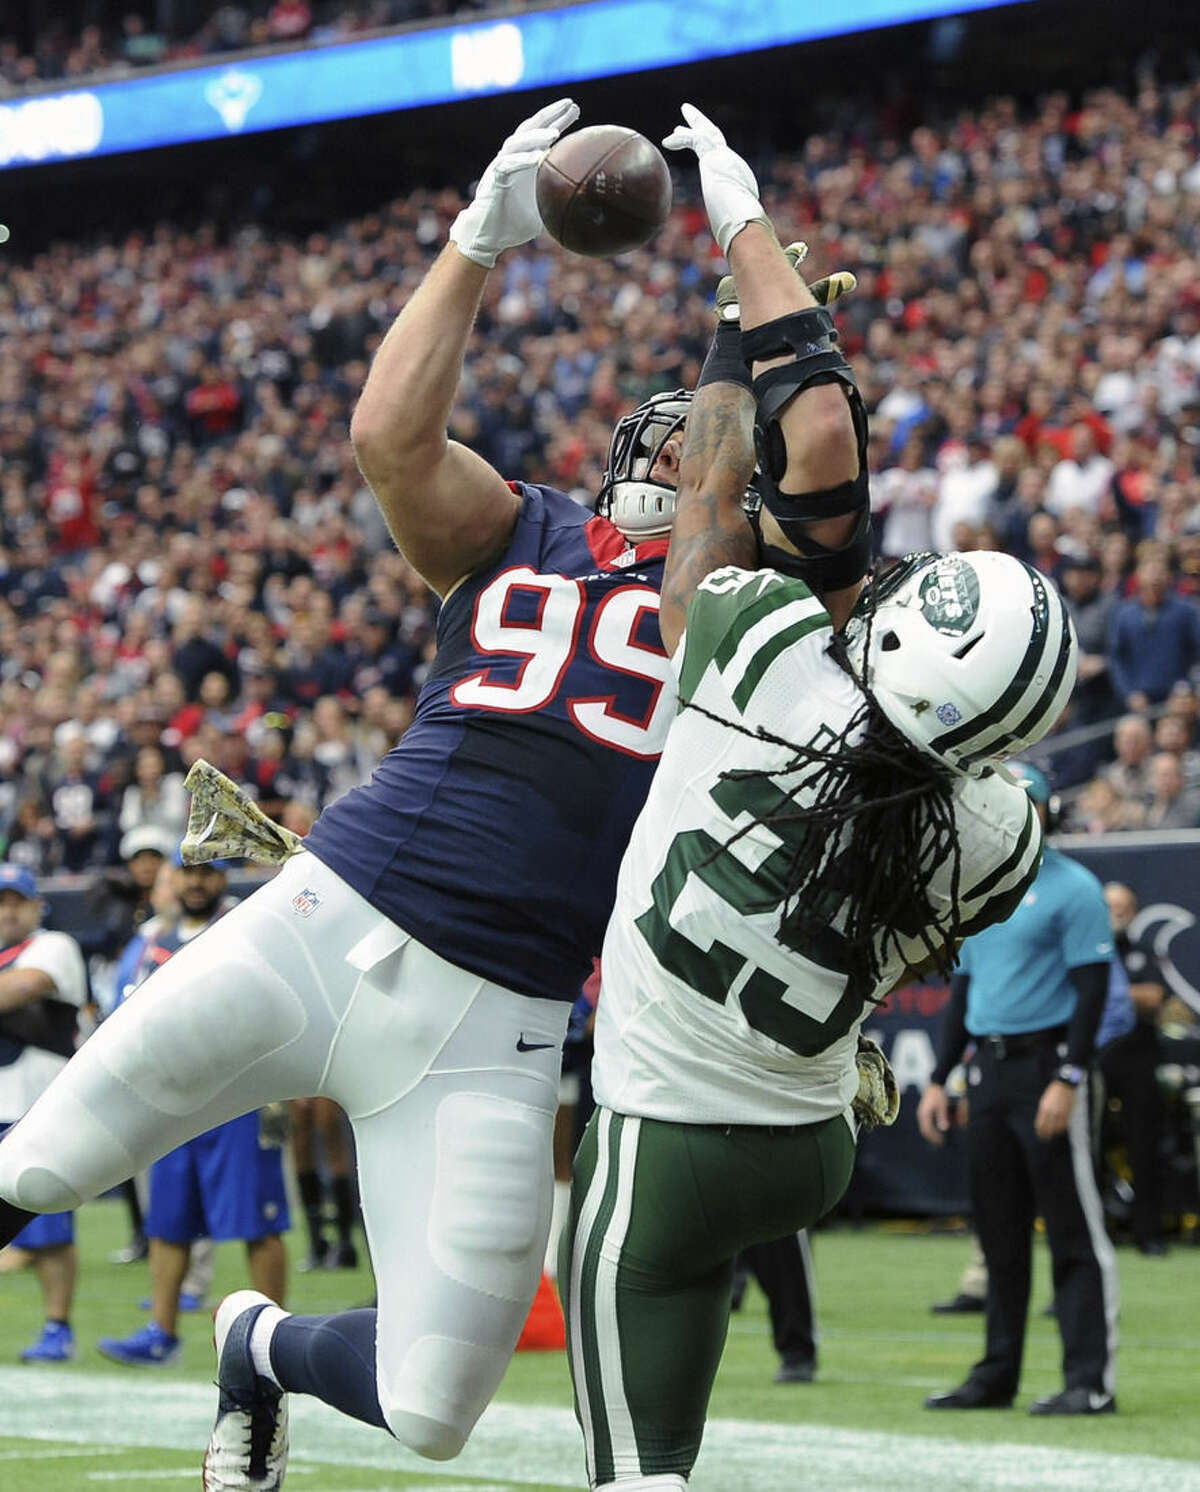 New York Jets strong safety Calvin Pryor (25) breaks up a pass intended for Houston Texans' J.J. Watt (99) in the end zone during the first half of an NFL football game, Sunday, Nov. 22, 2015, in Houston. (AP Photo/George Bridges)